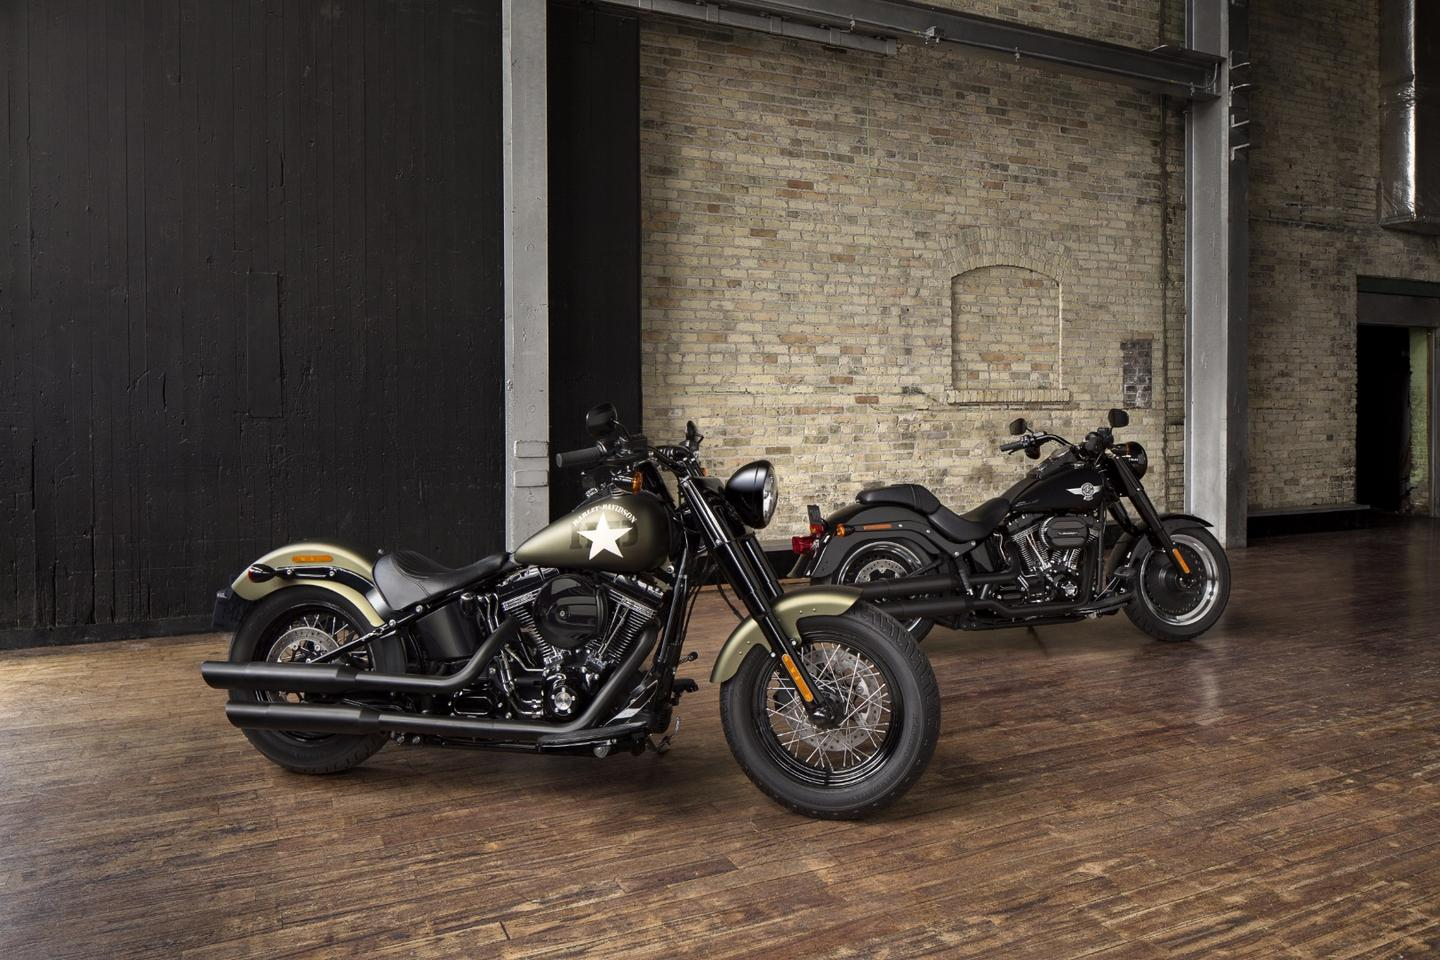 2016 Harley-Davidson Softail Slim S (foreground) and Fat Boy S (background)